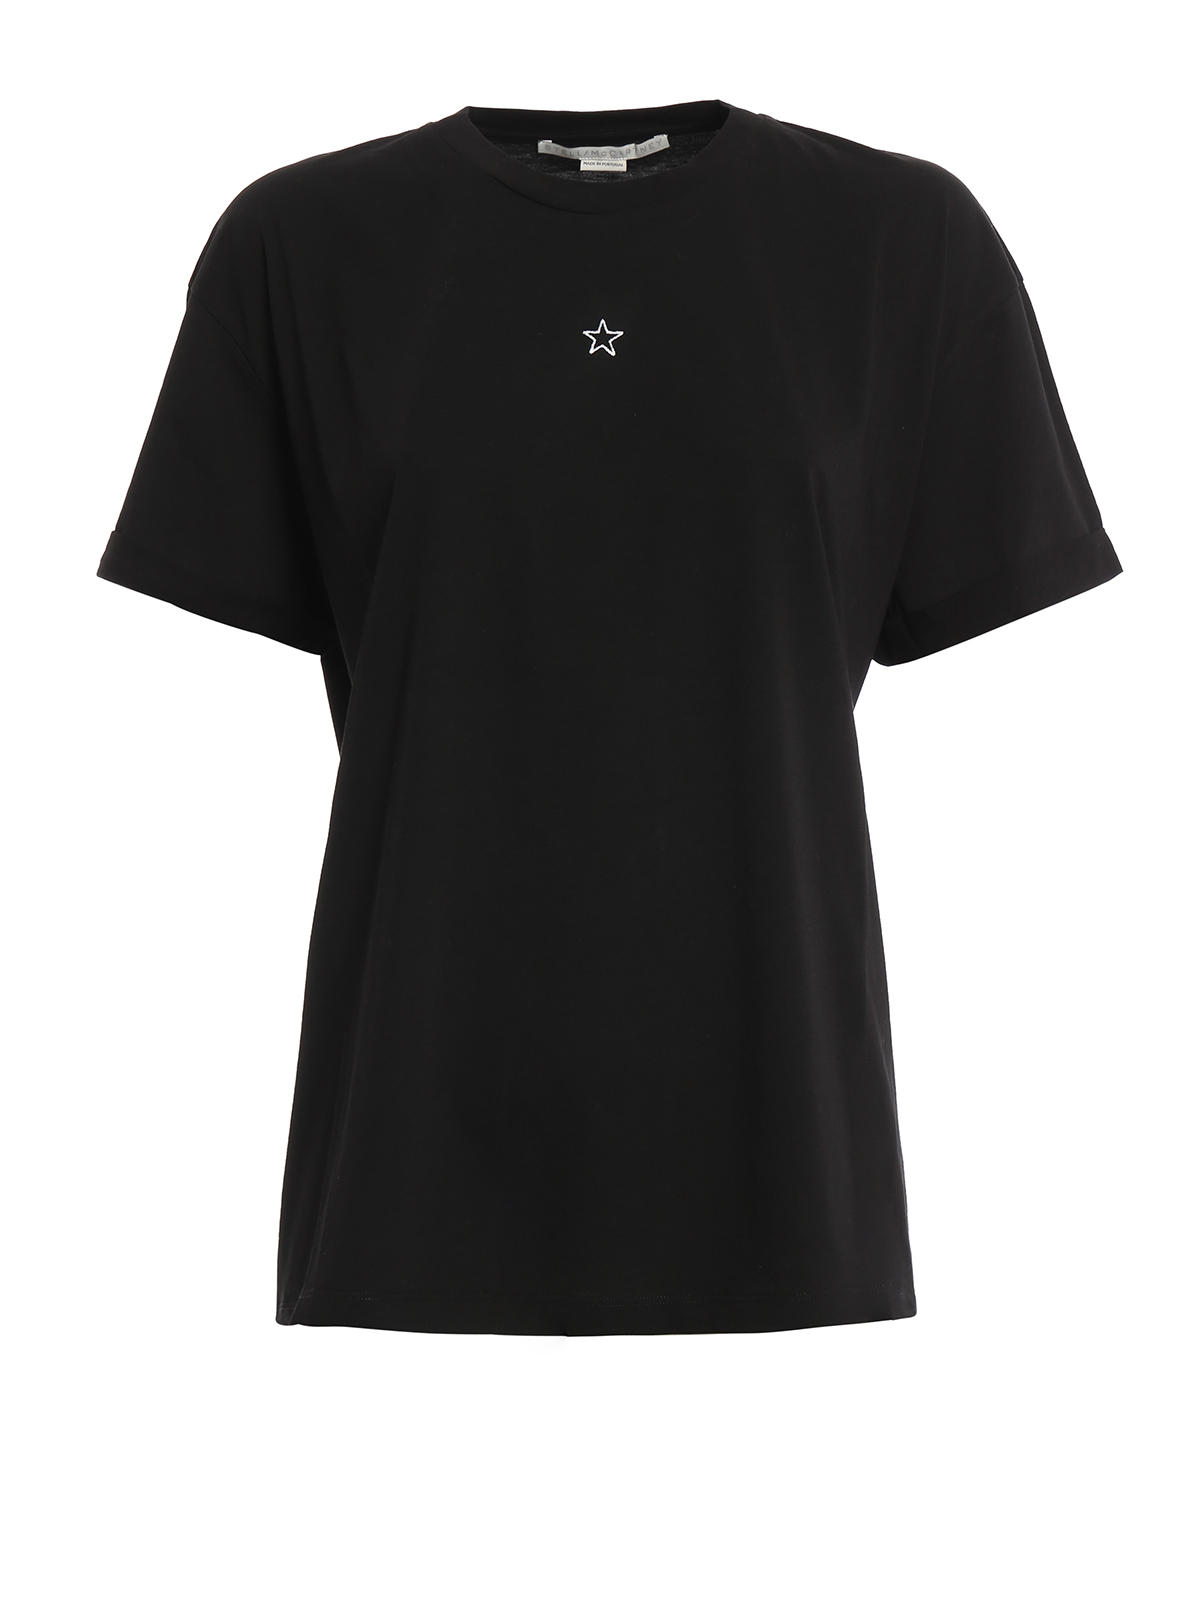 Micro star embroidery t shirt by stella mccartney t for Stella mccartney t shirt